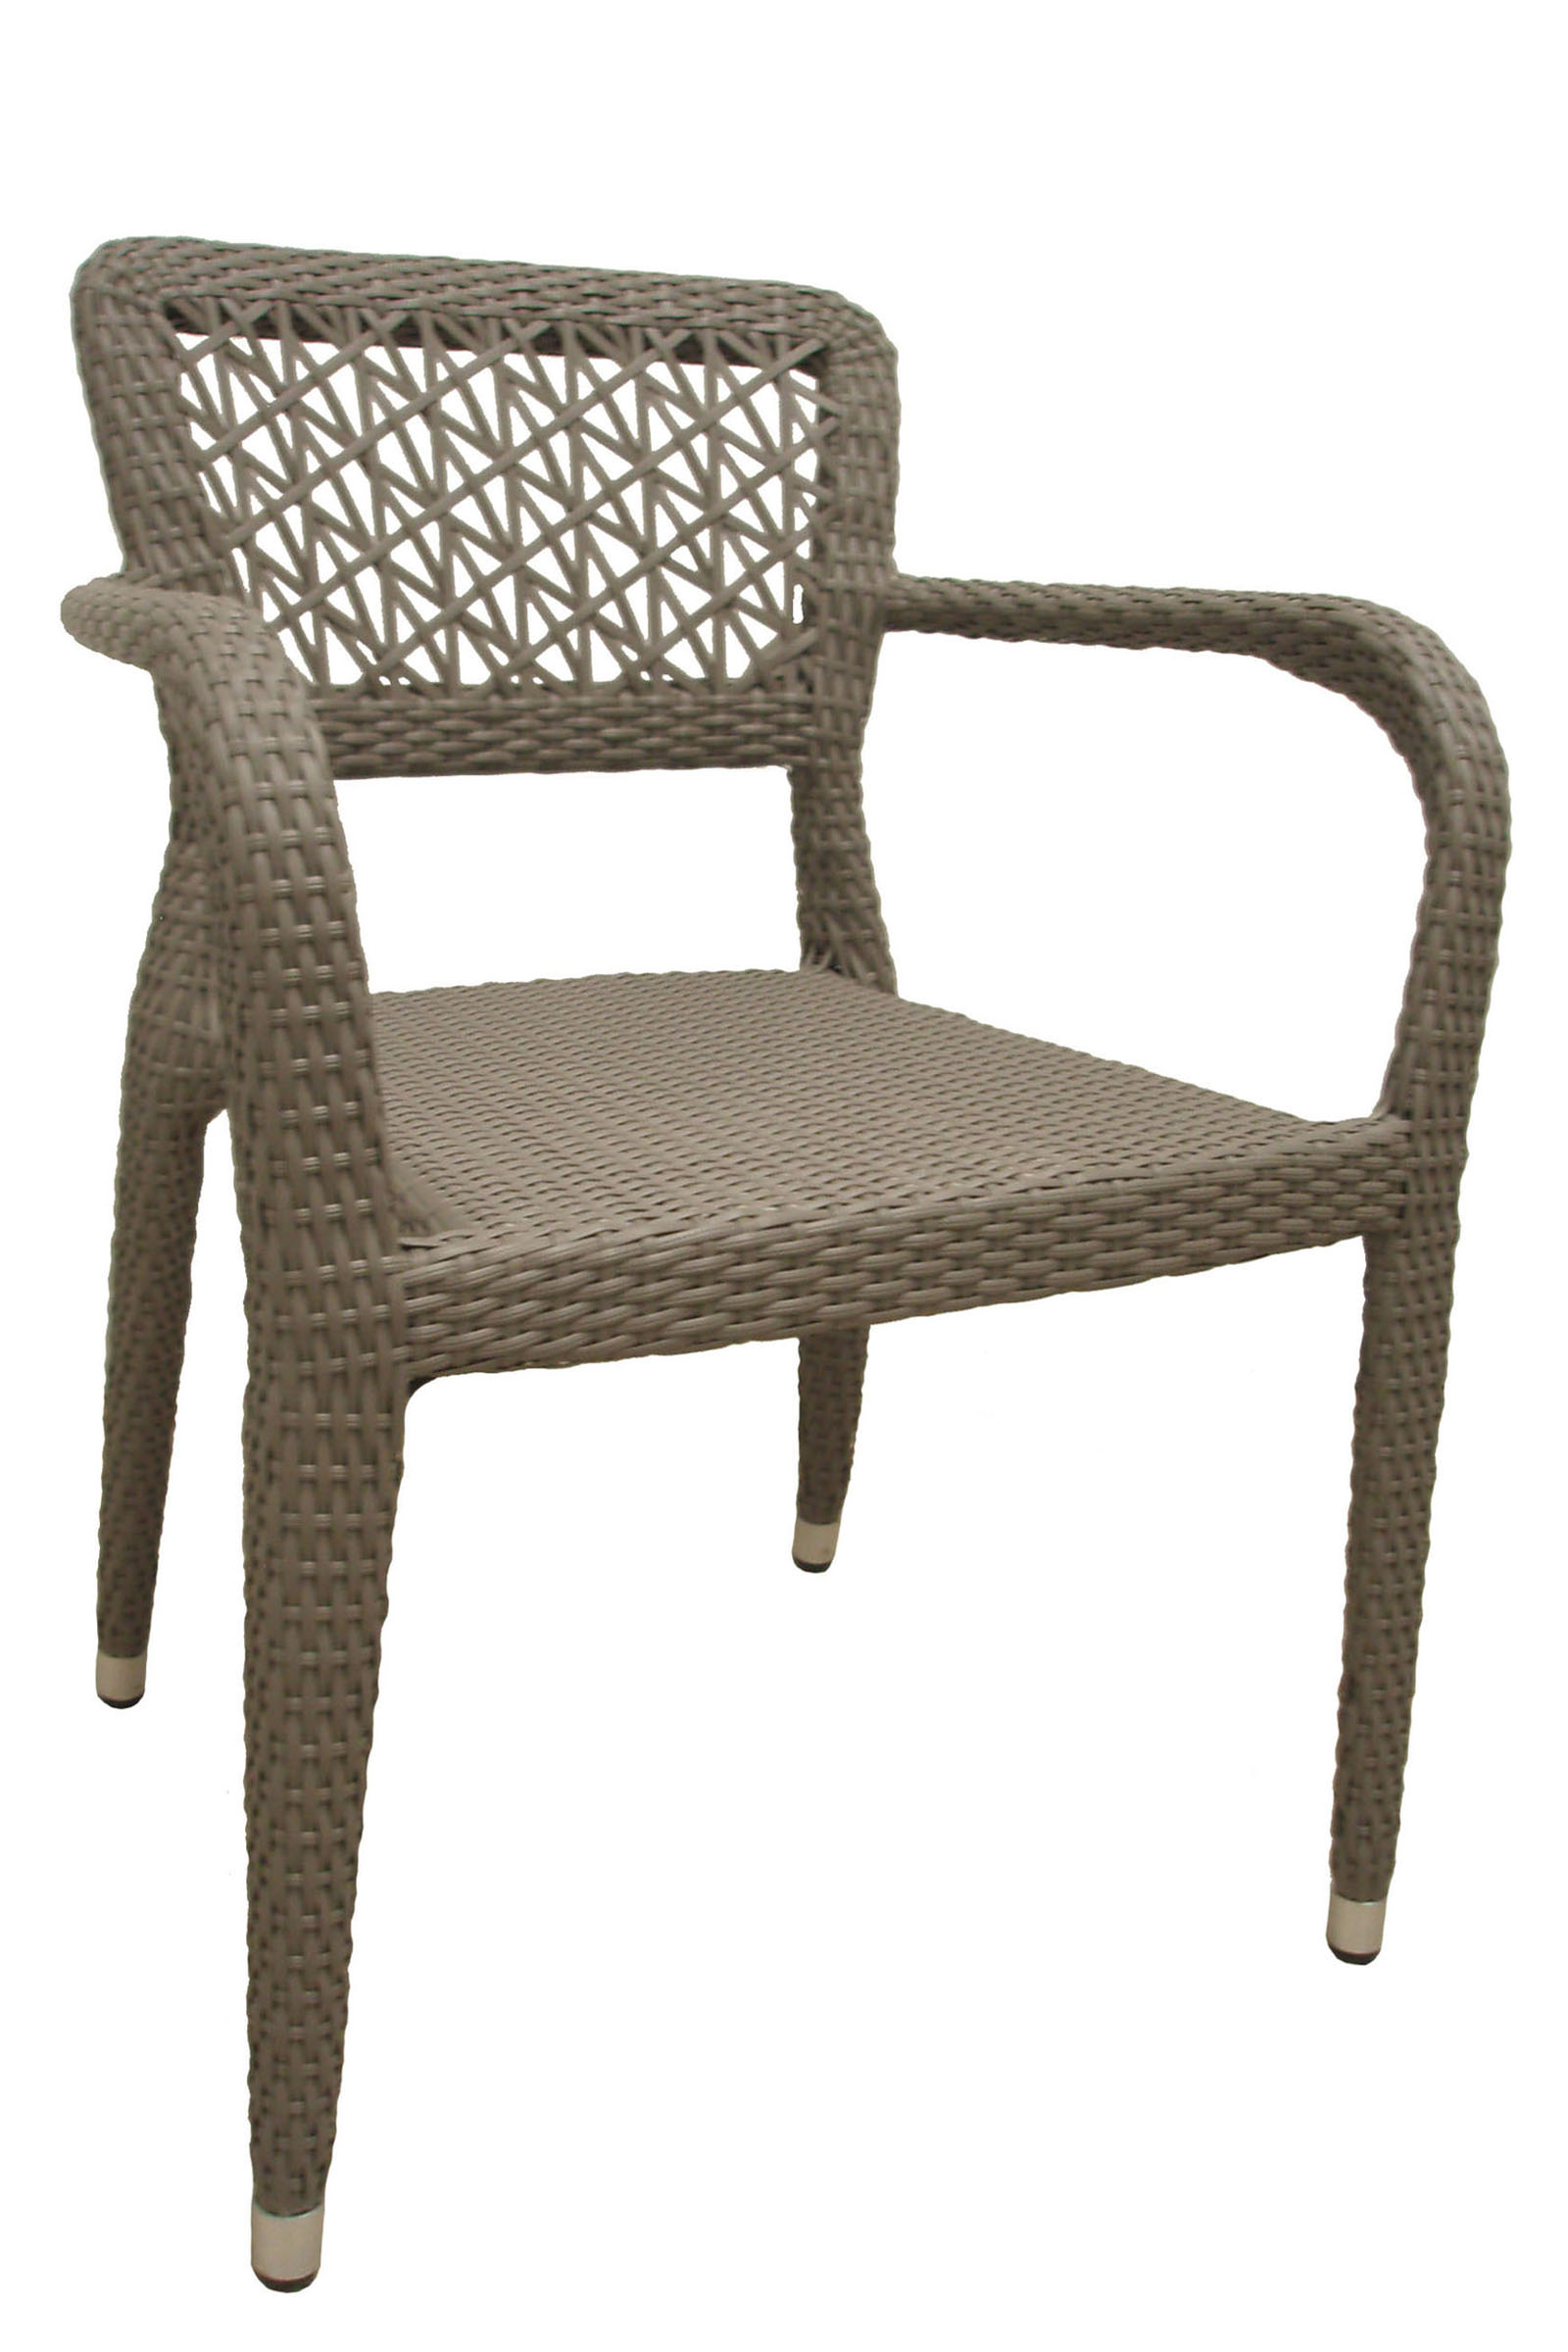 AL-5699-041-R OSAKA SIDECHAIR GREY REEDED